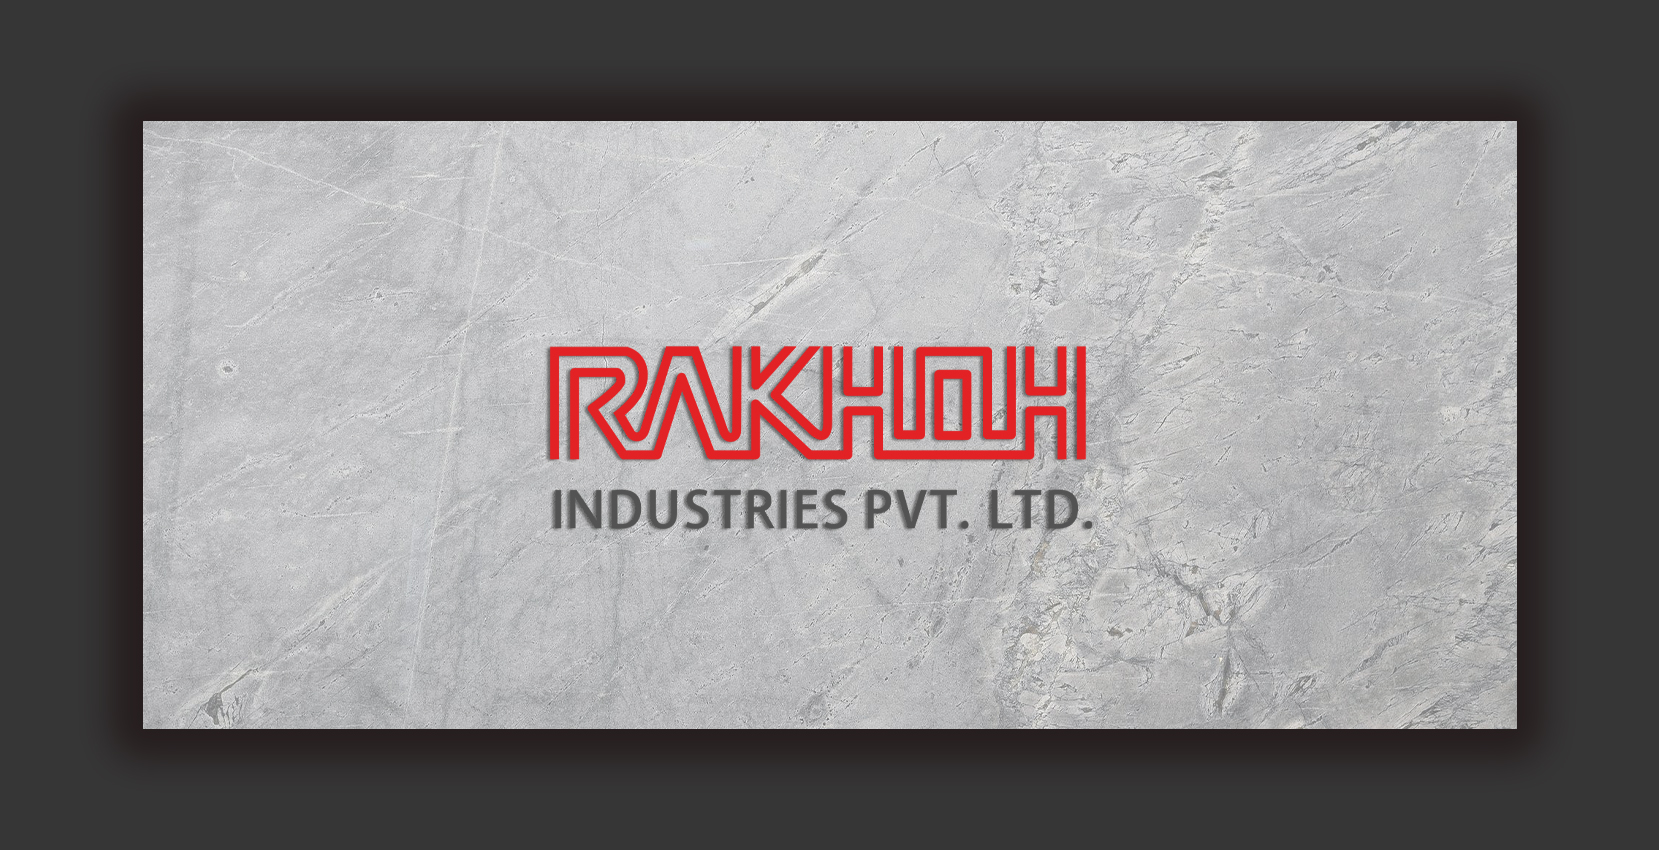 Logo Designed for Rakhoh Industries Pune